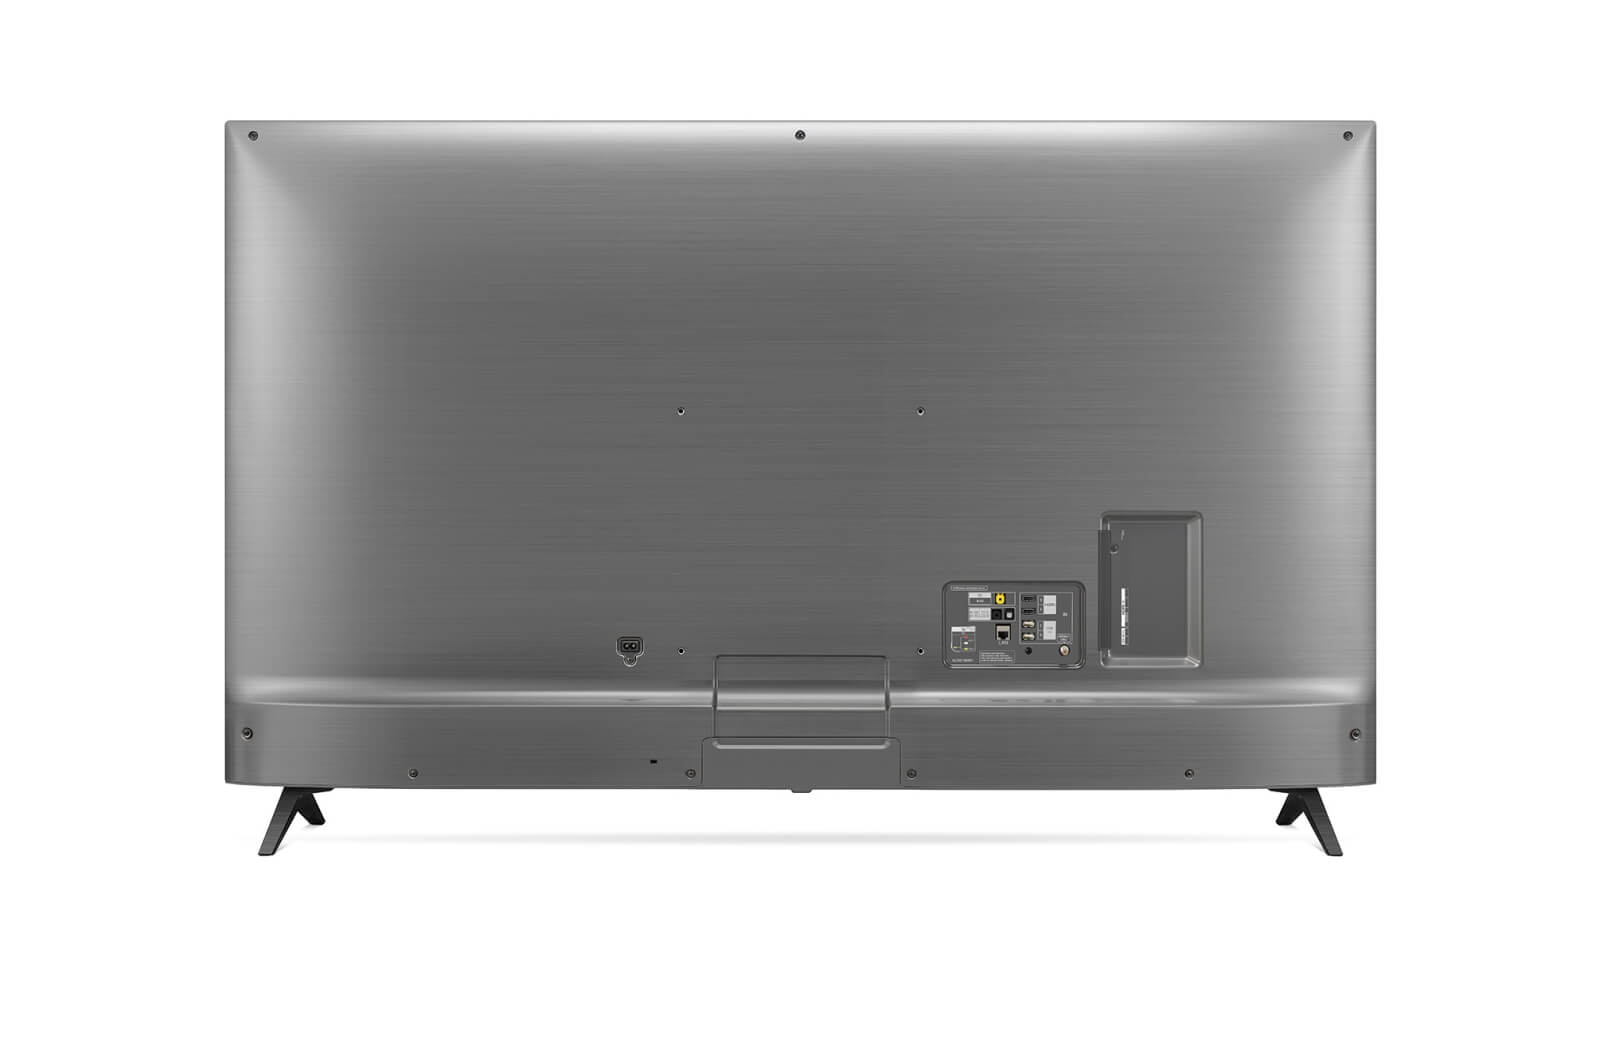 LG SK8000 Super UHD 4K HDR Premium Smart LED TV with Freeview Play - Brilliant Titan back input output